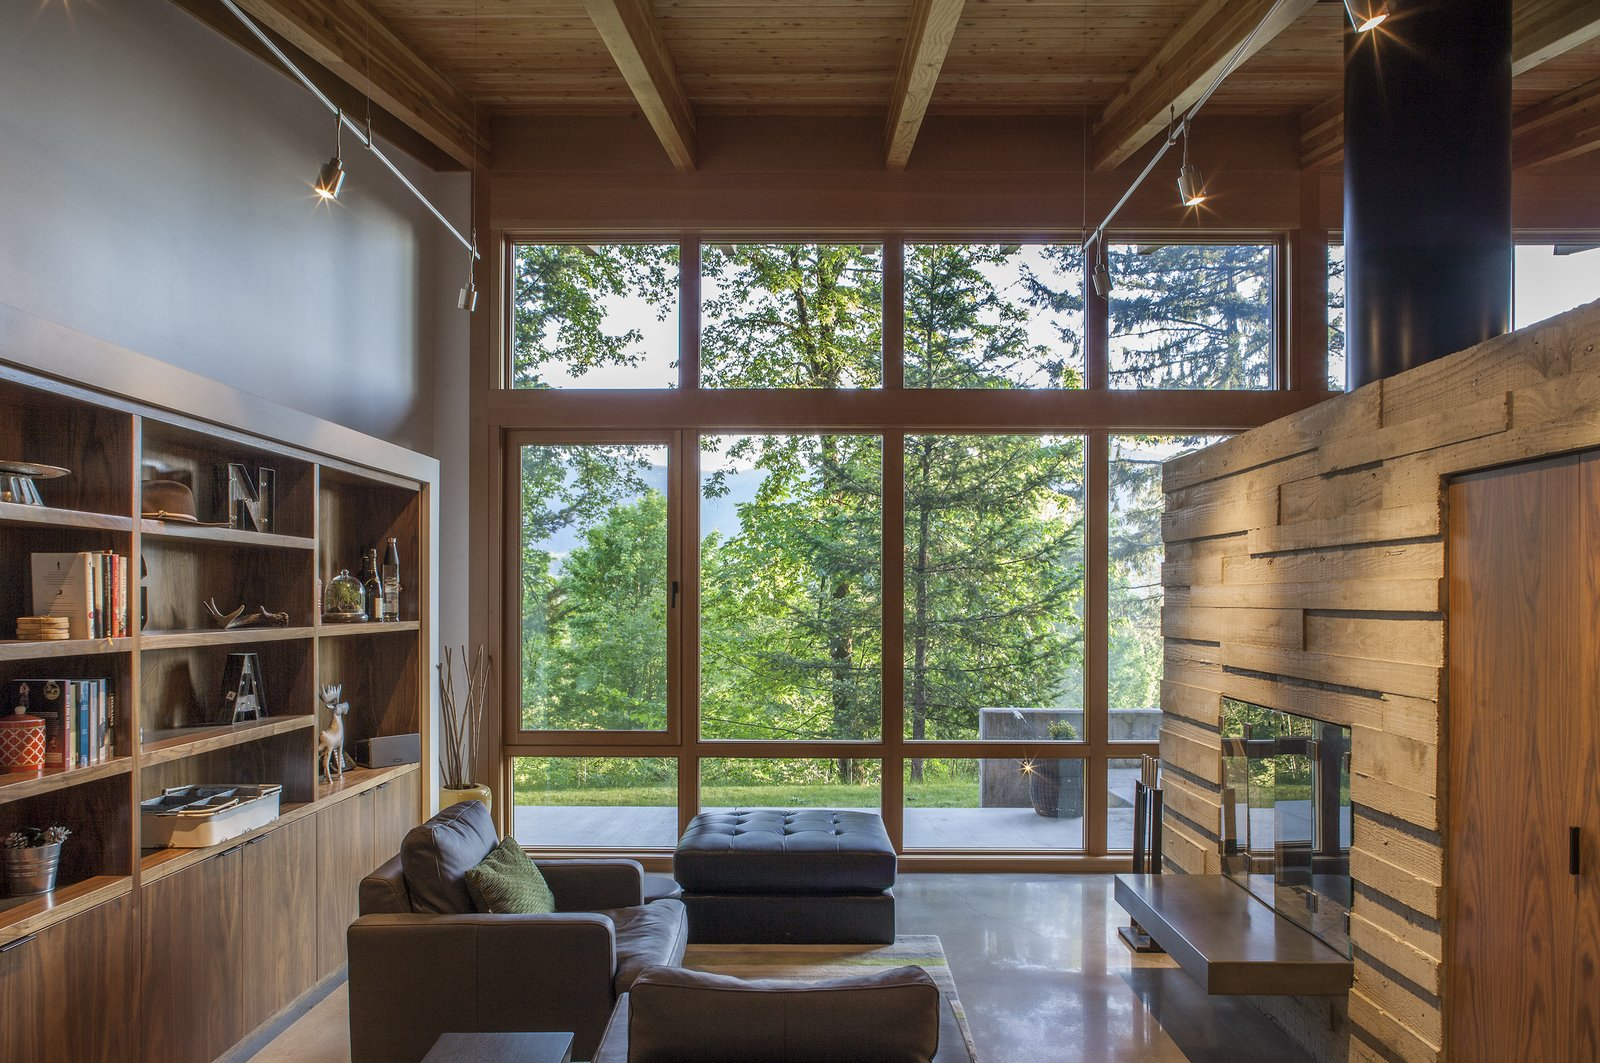 In Form This Cabin Is A Simple Bar Of Cedar And Glass Running Along The Length An Old Logging Road Anchored Into Hillside Sweeping Concrete Wall